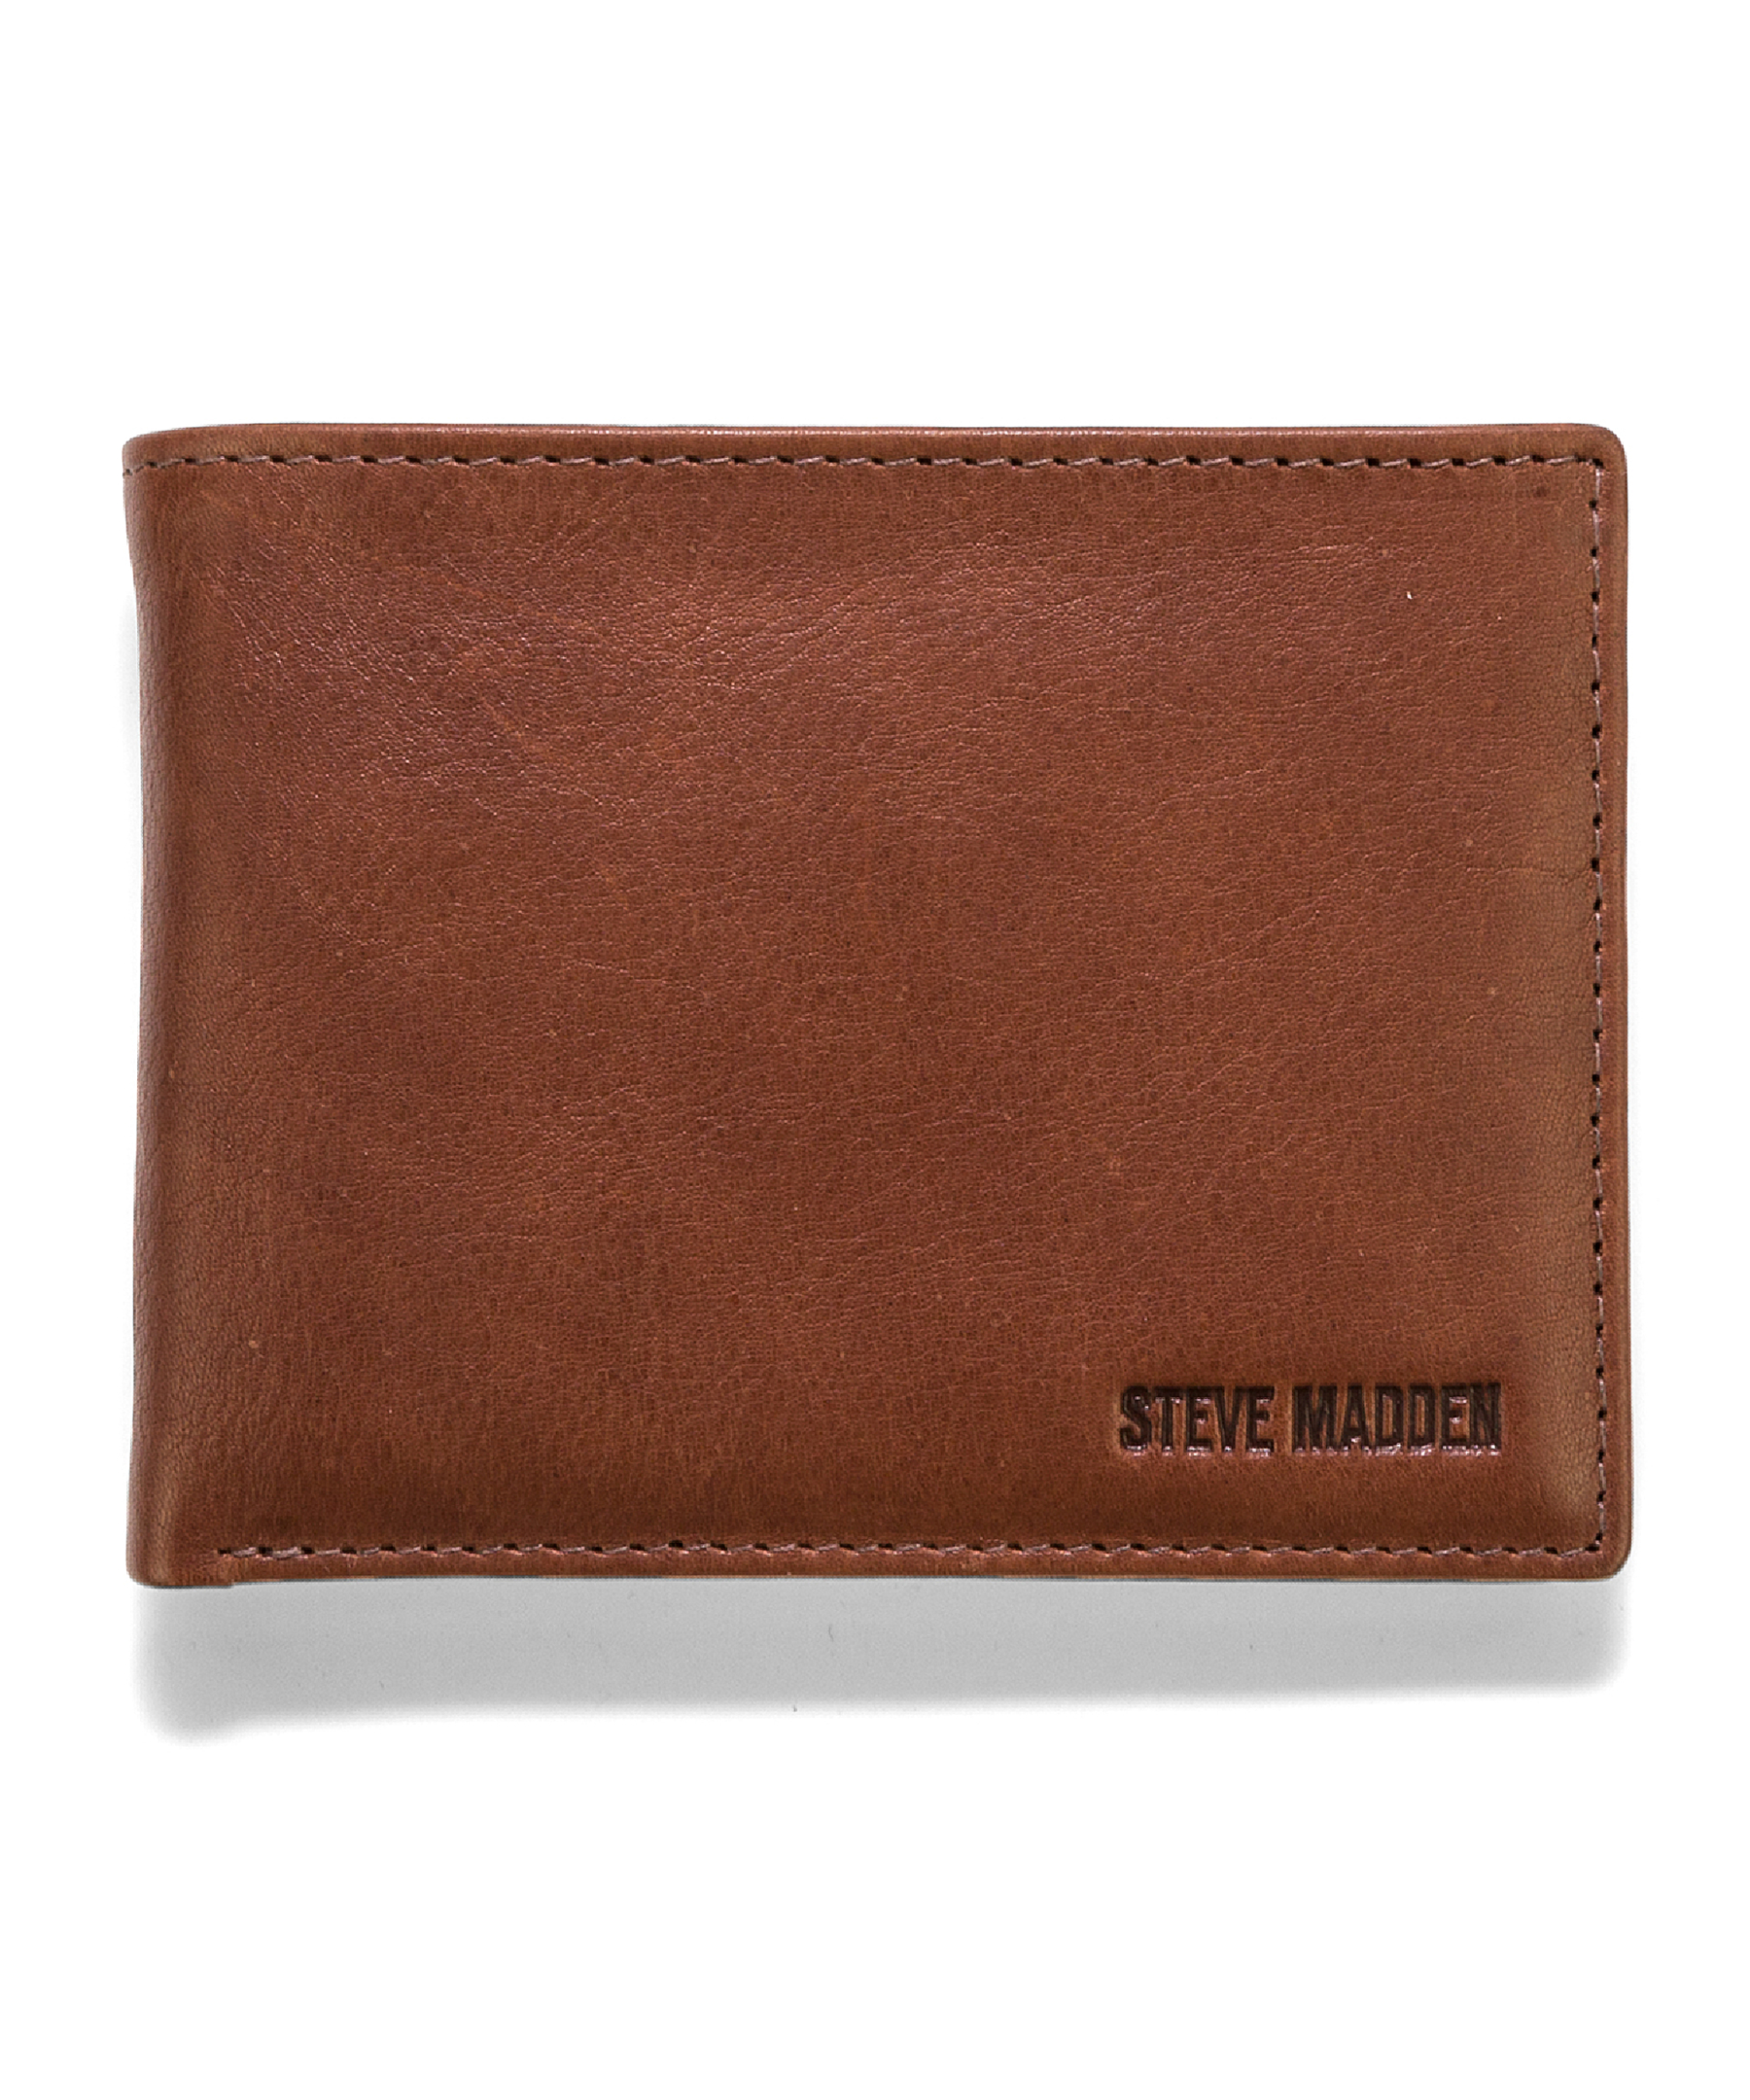 Steve Madden Mealu Leather Passcase Wallet In Brown For